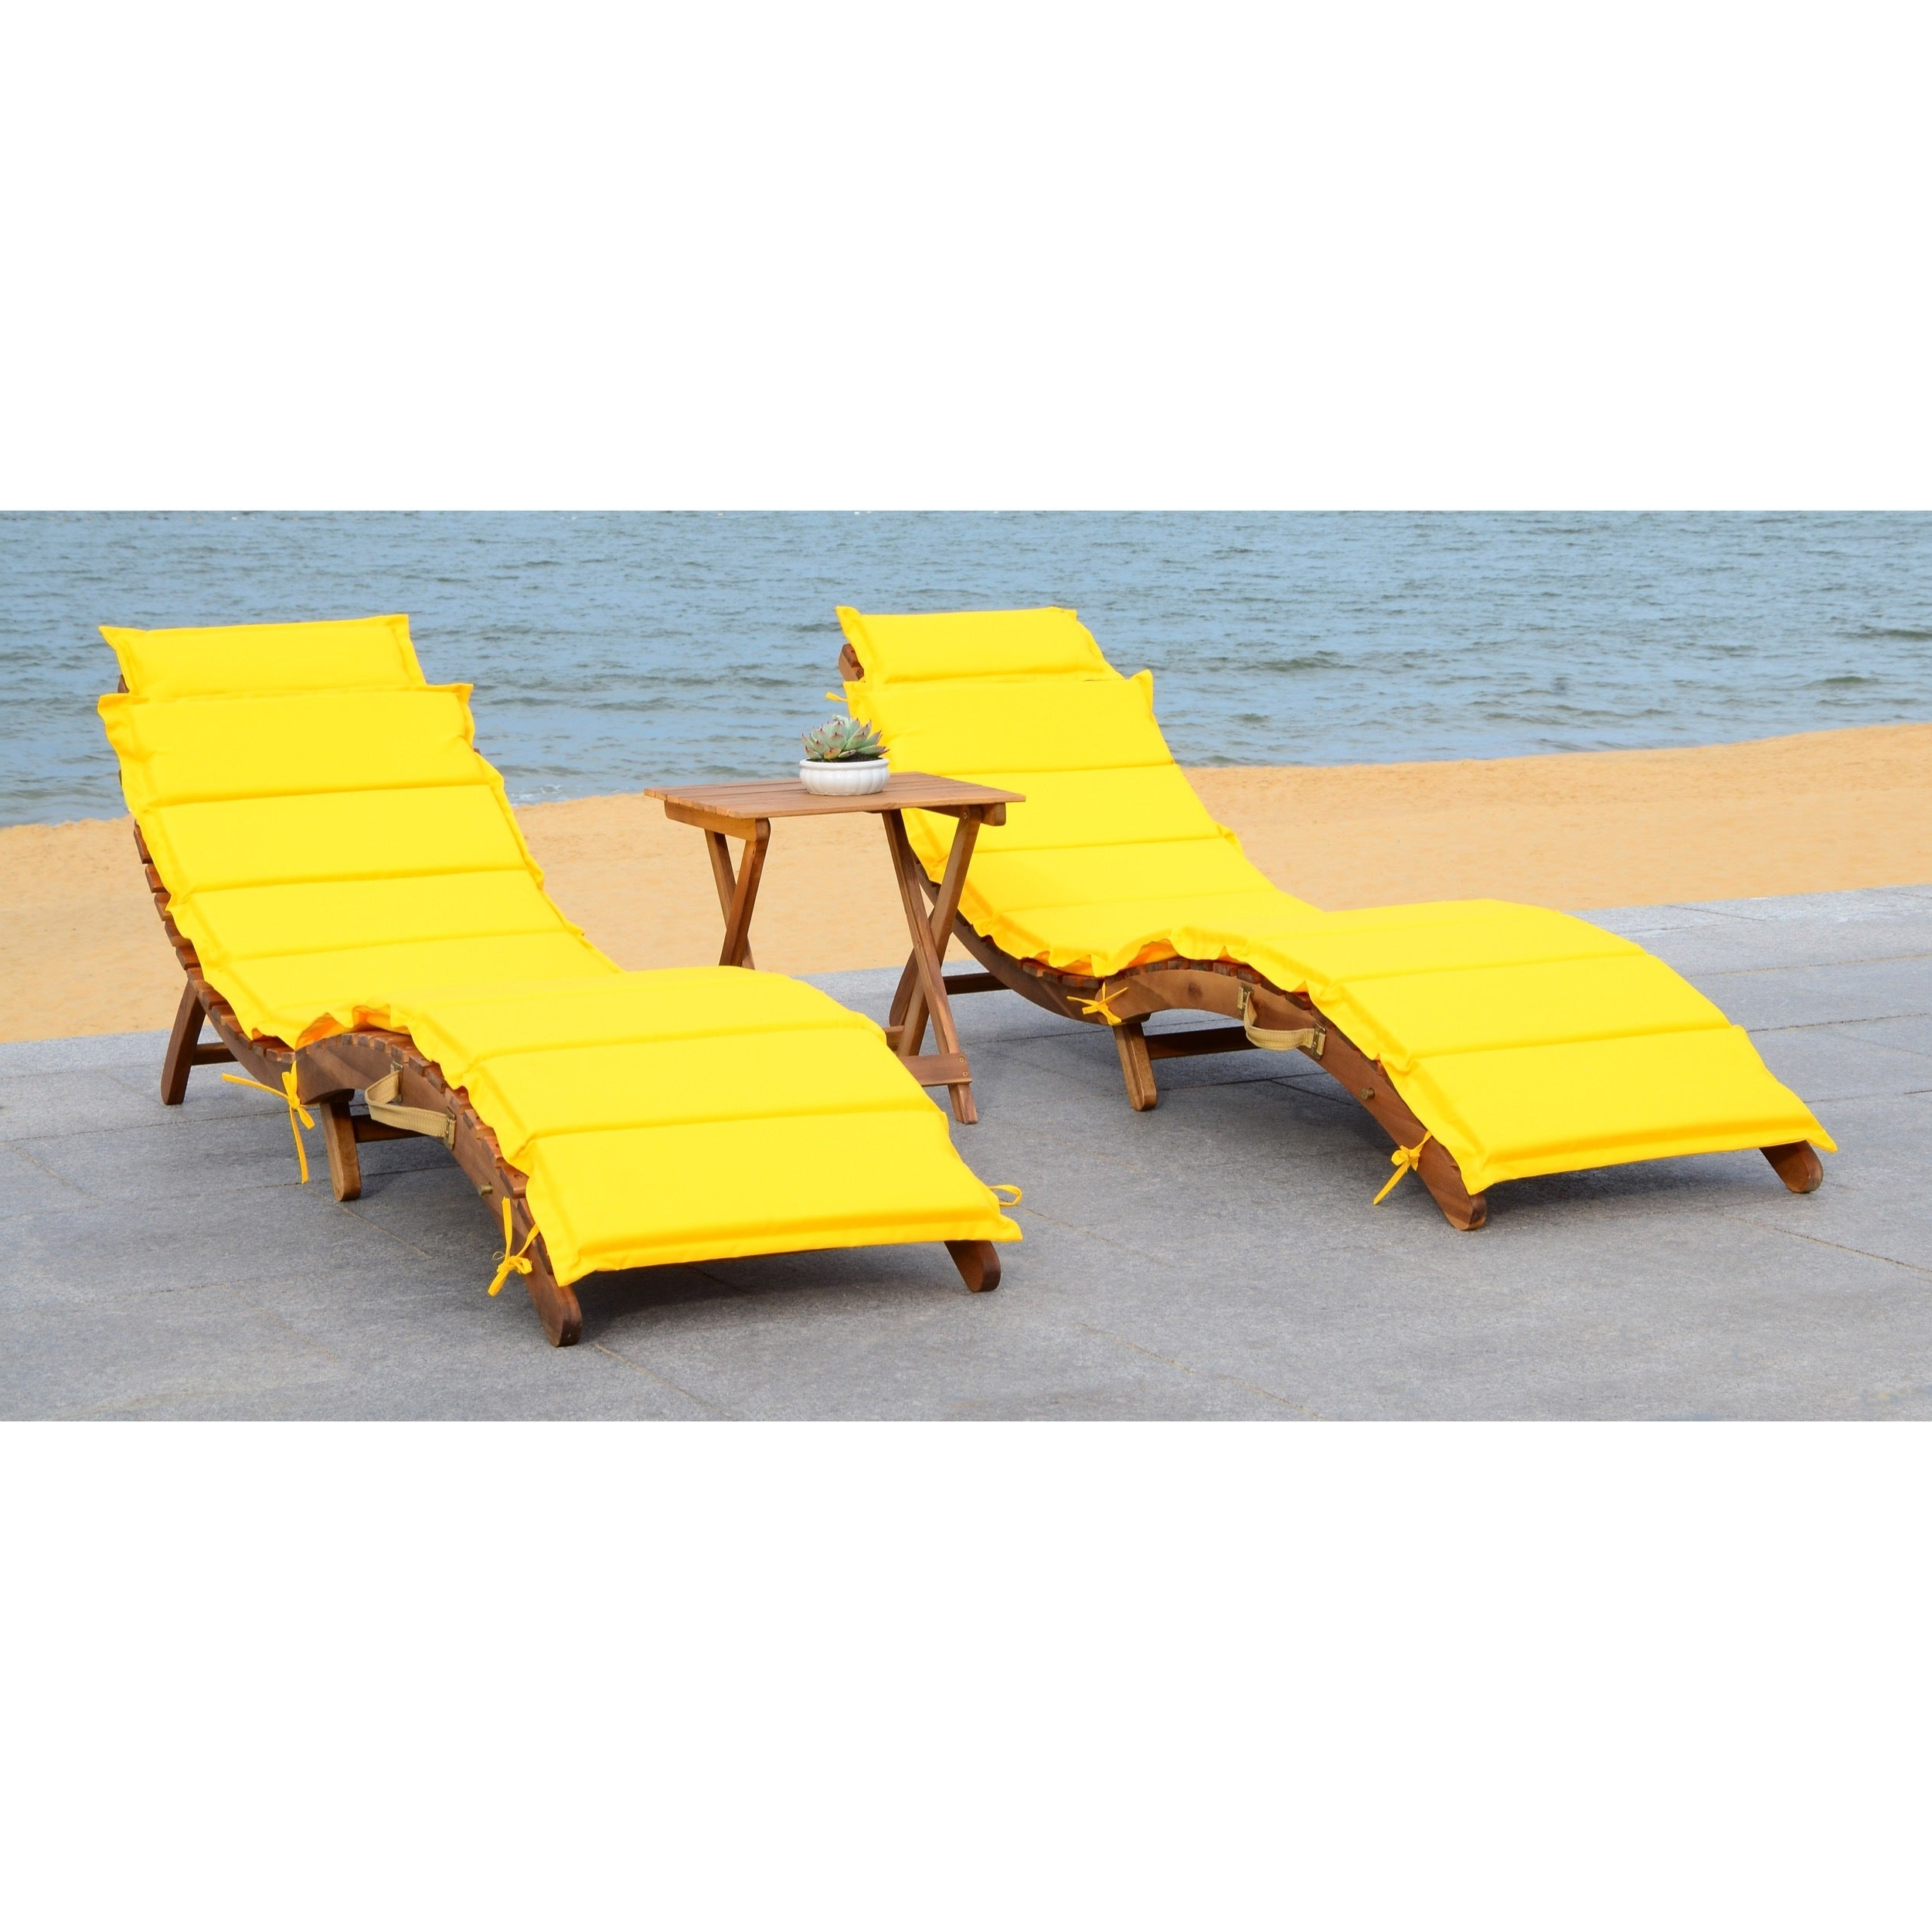 Recent Safavieh Outdoor Living Pacifica Brown/ Yellow Piece Lounge Set Pertaining To Outdoor Living Pacifica Piece Lounge Sets (Gallery 4 of 25)